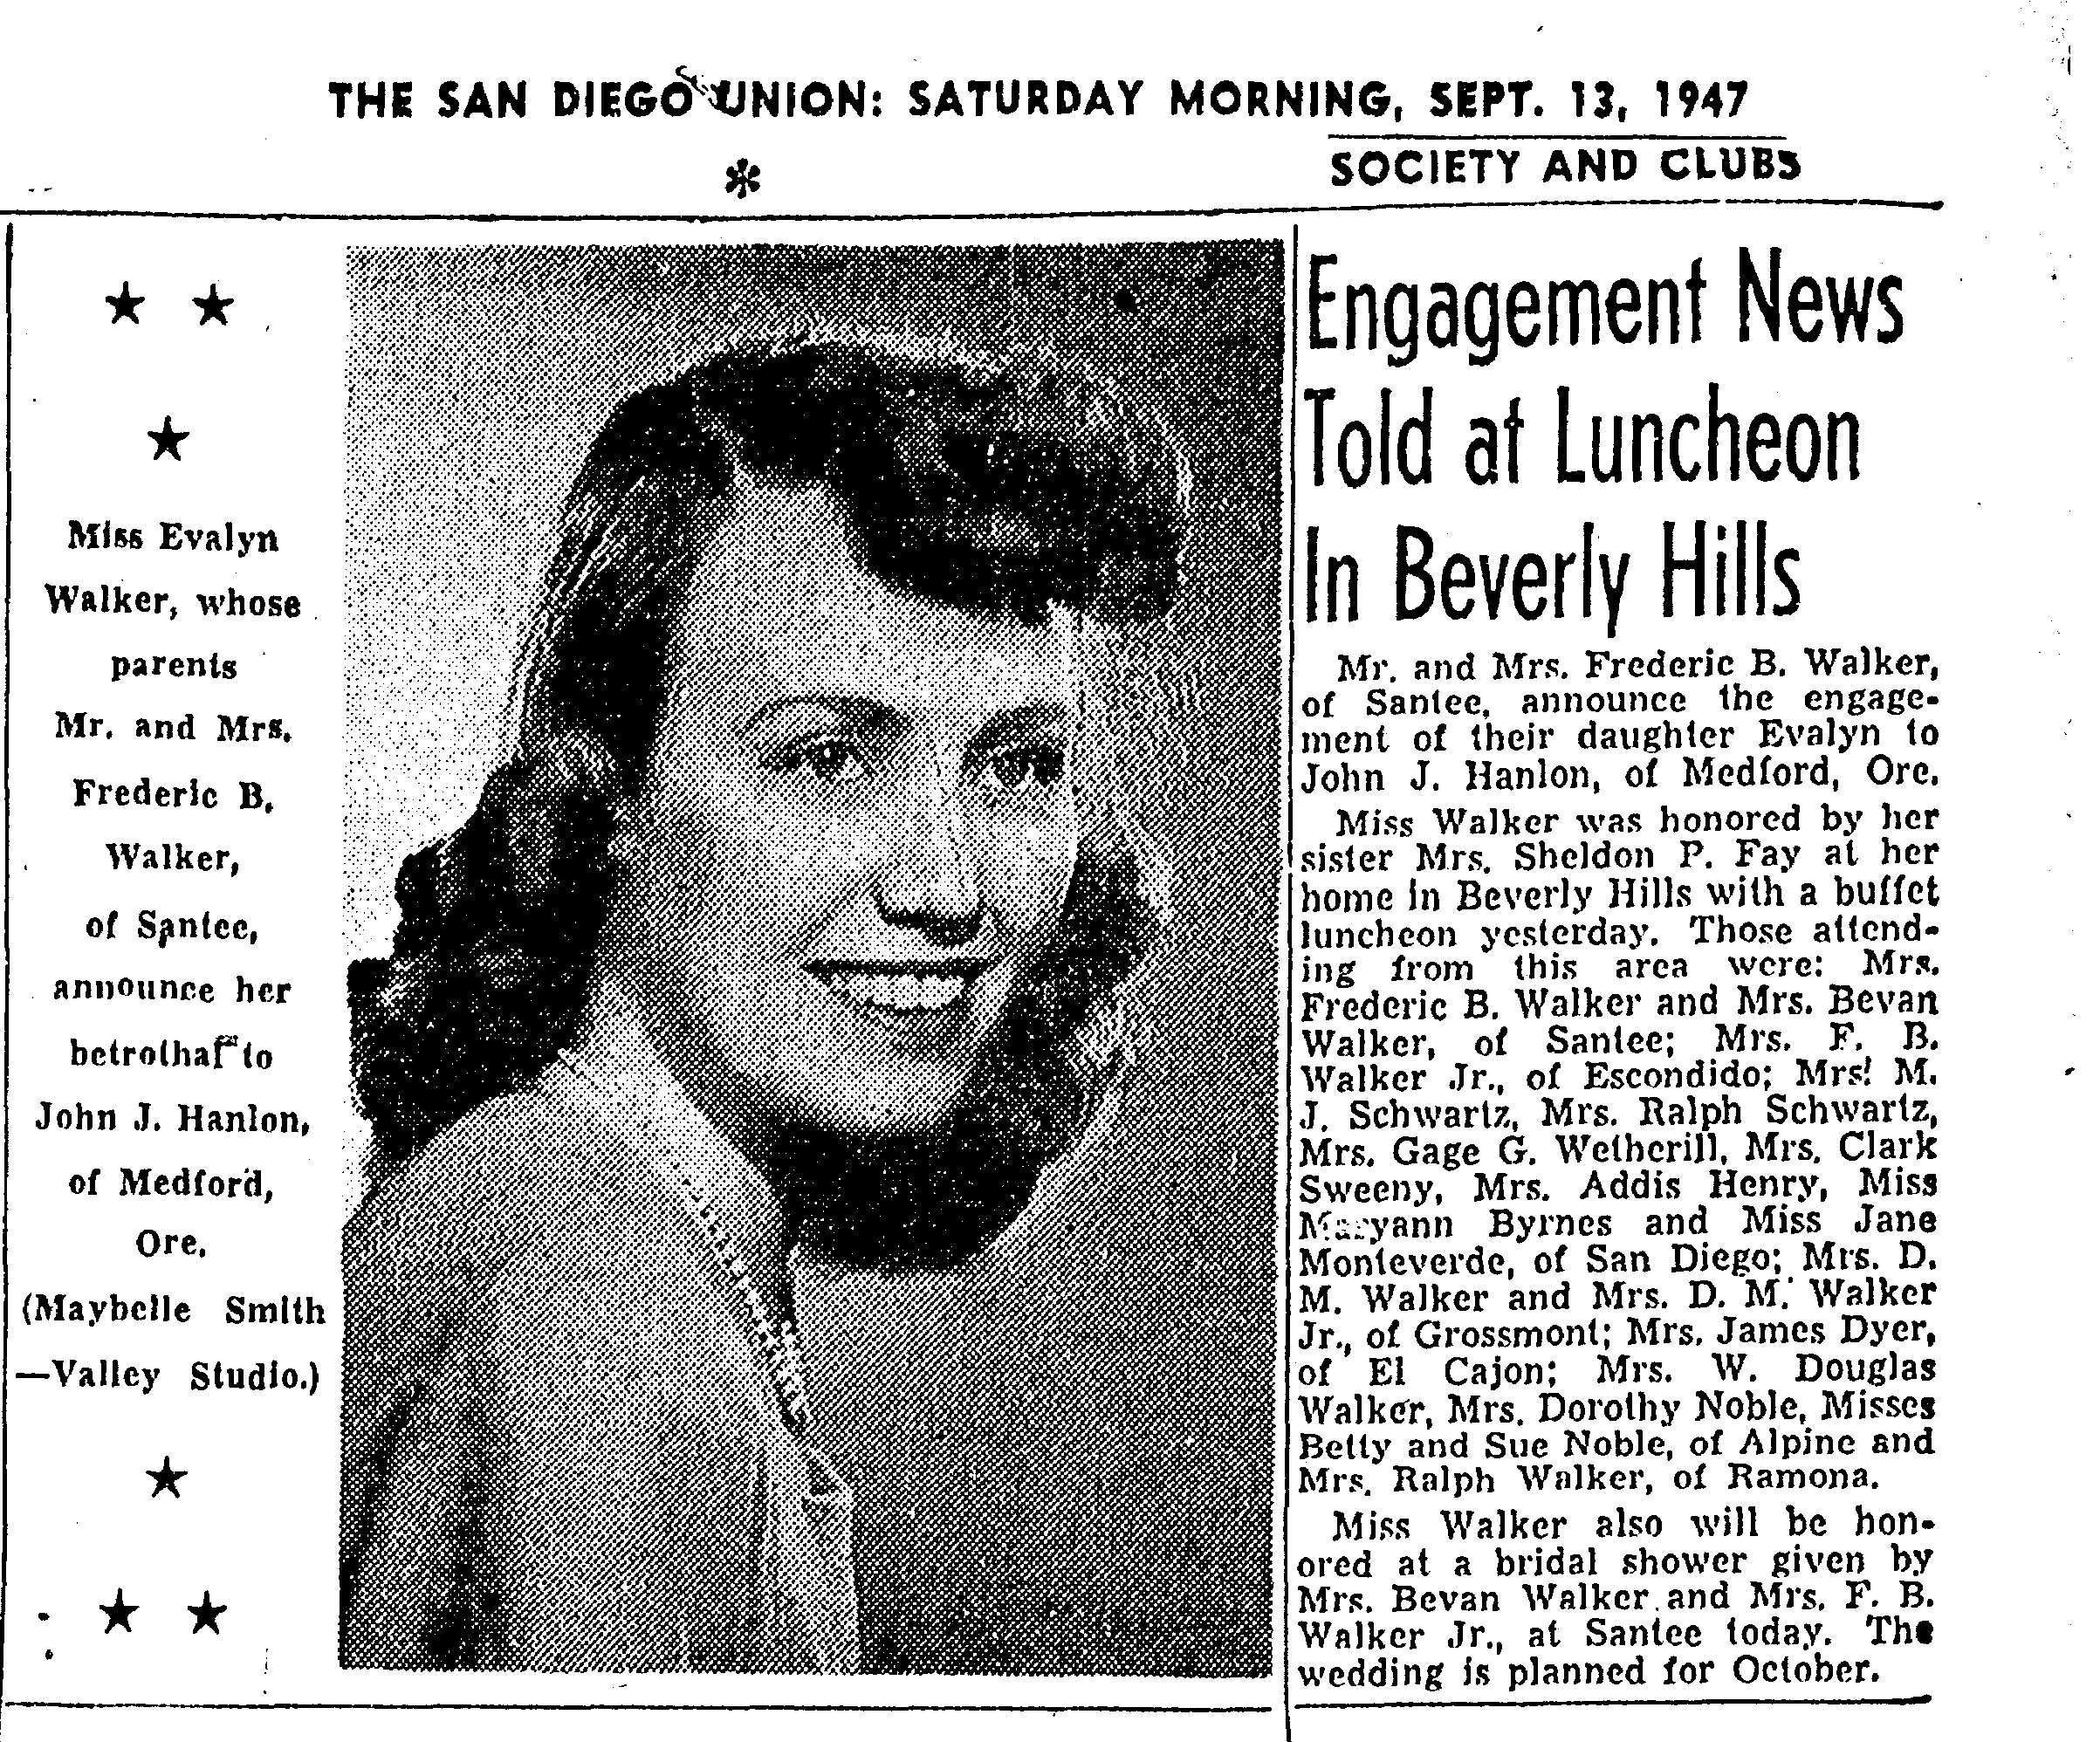 1947 Engagement  of Evelyn Walker